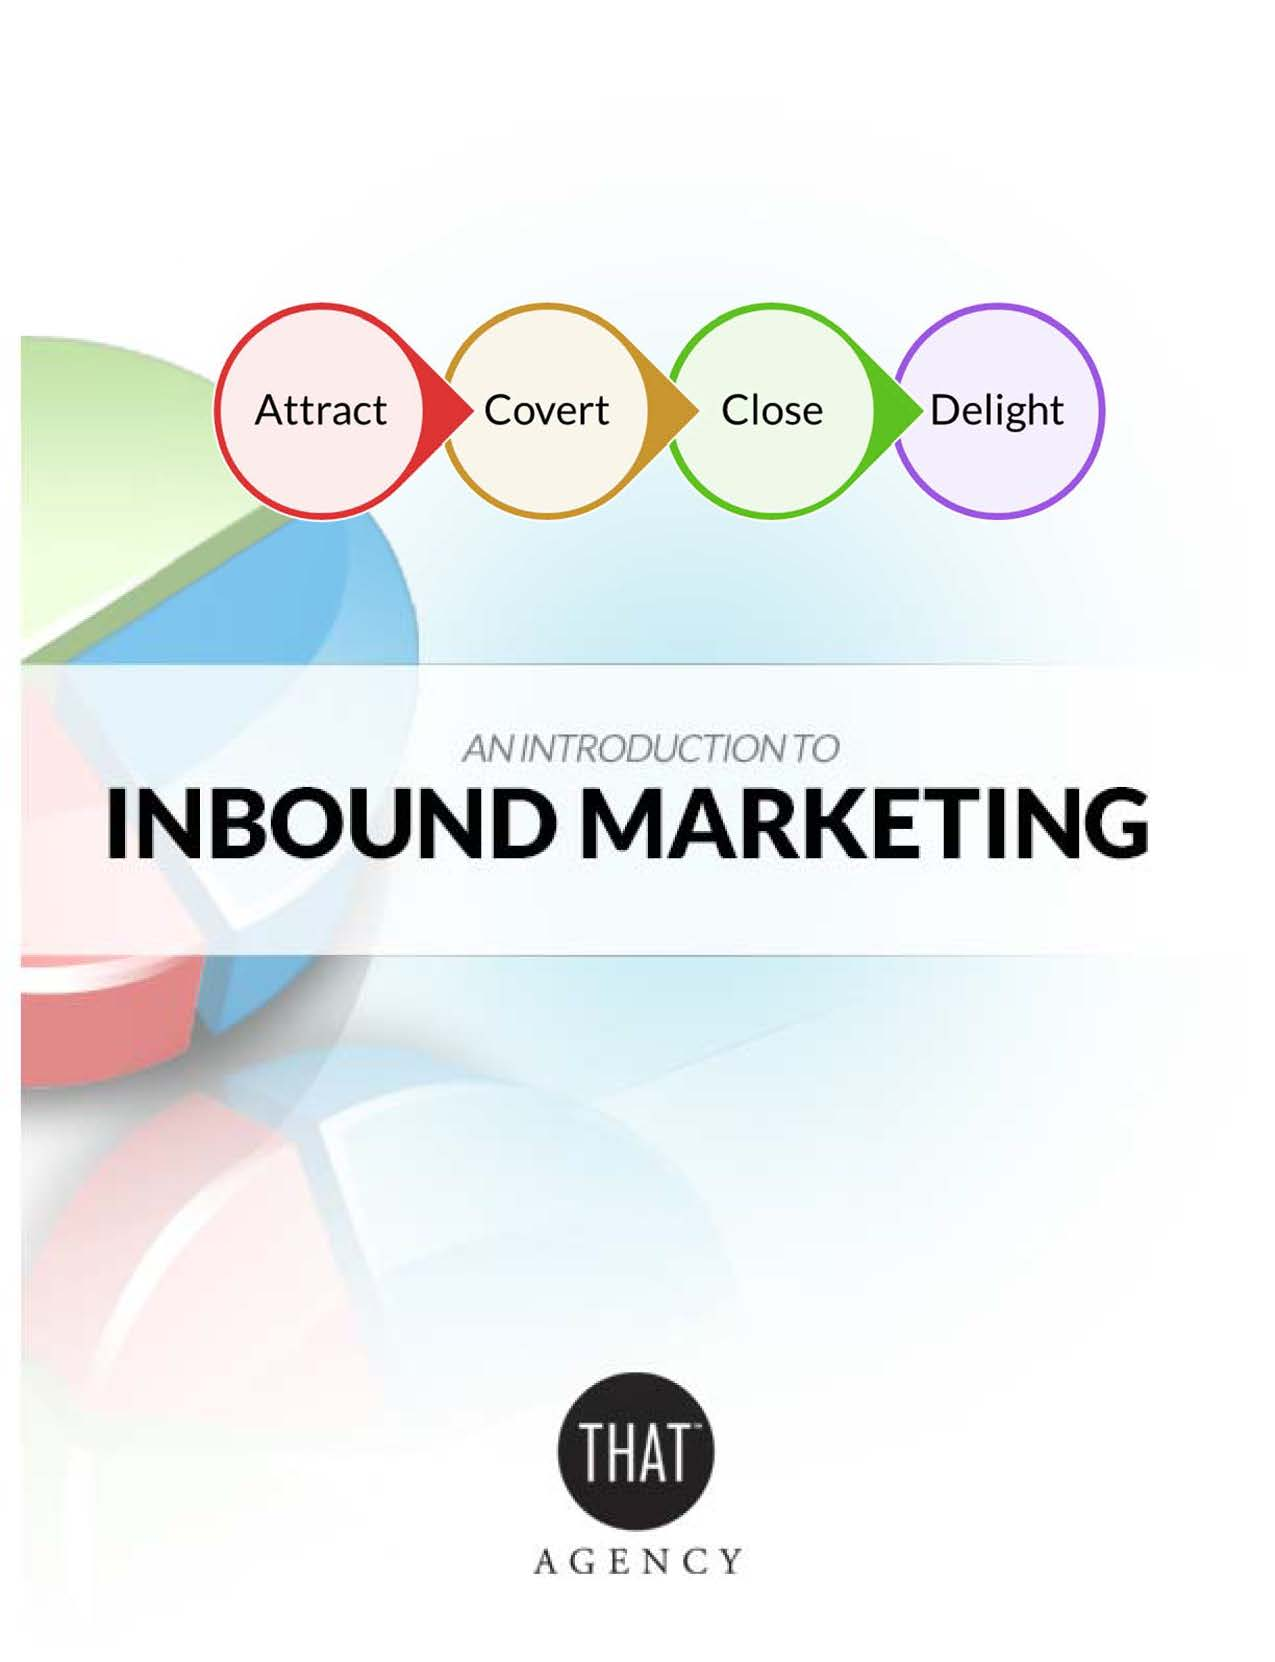 Inbound Marketing Whitepaper | THAT Agency